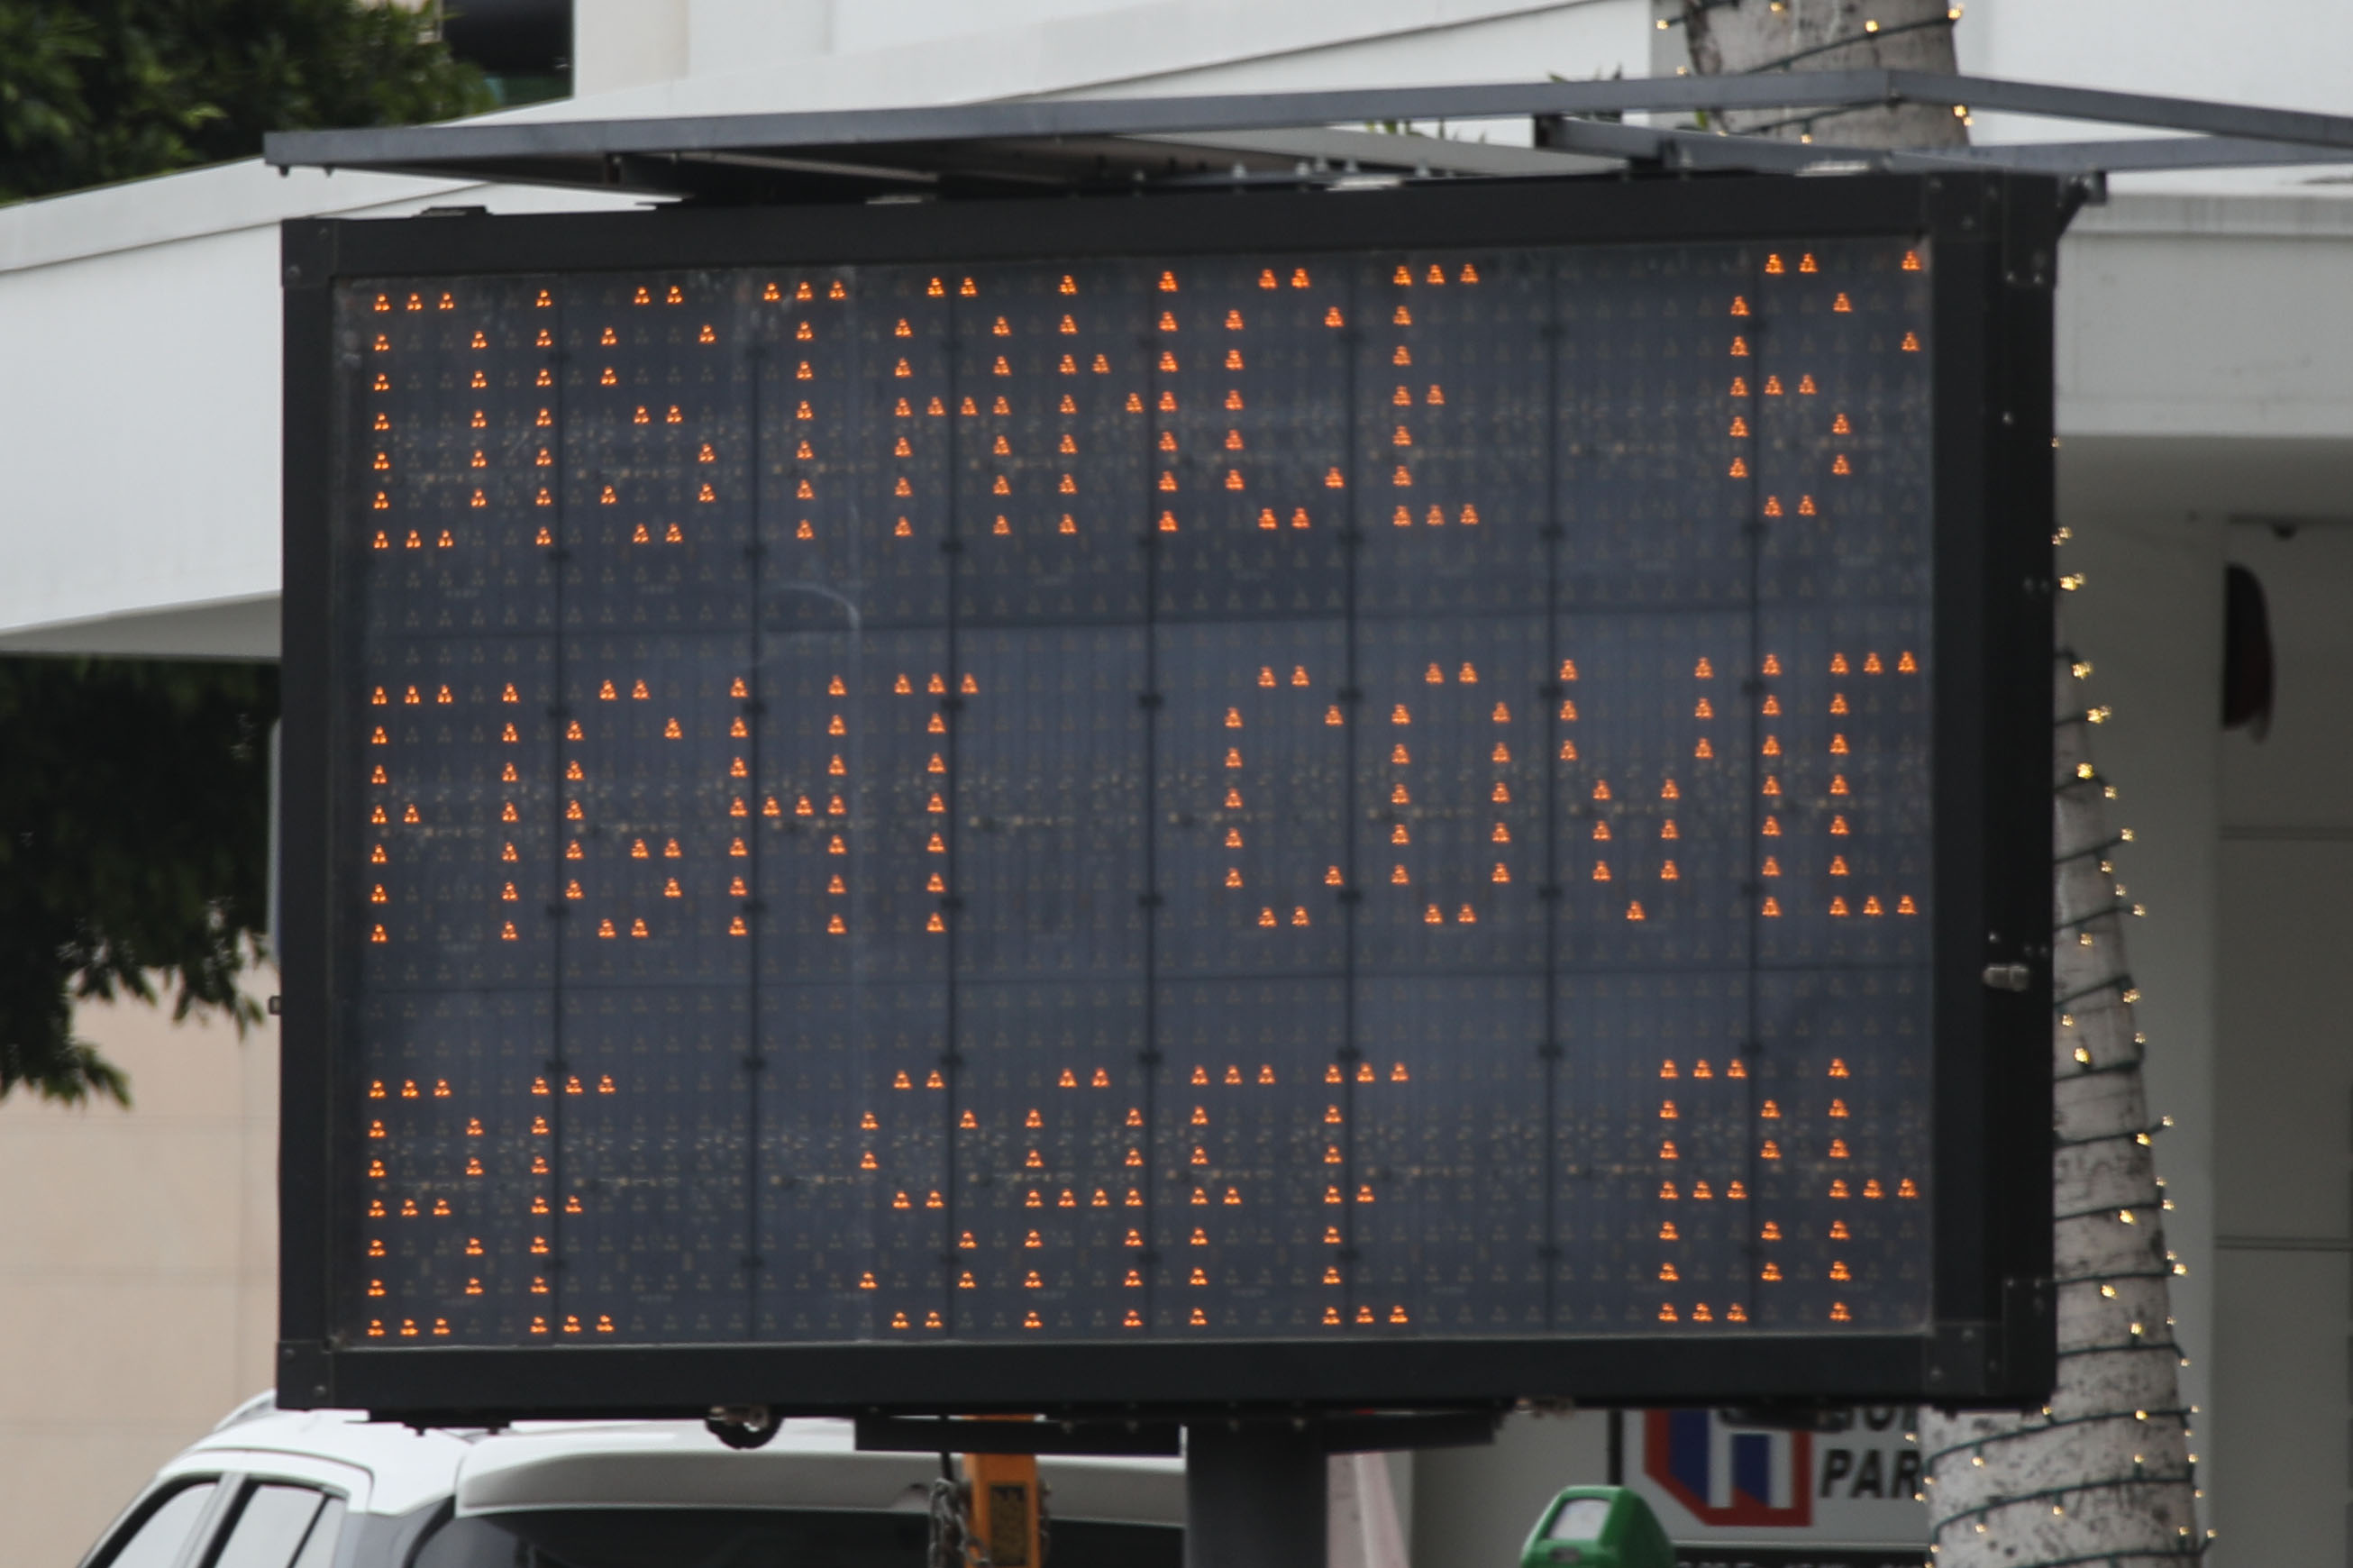 BEVERLY HILLS, LOS ANGELES, CALIFORNIA, USA - MARCH 31: A Caltrans Changeable Message Sign (CMS) war...